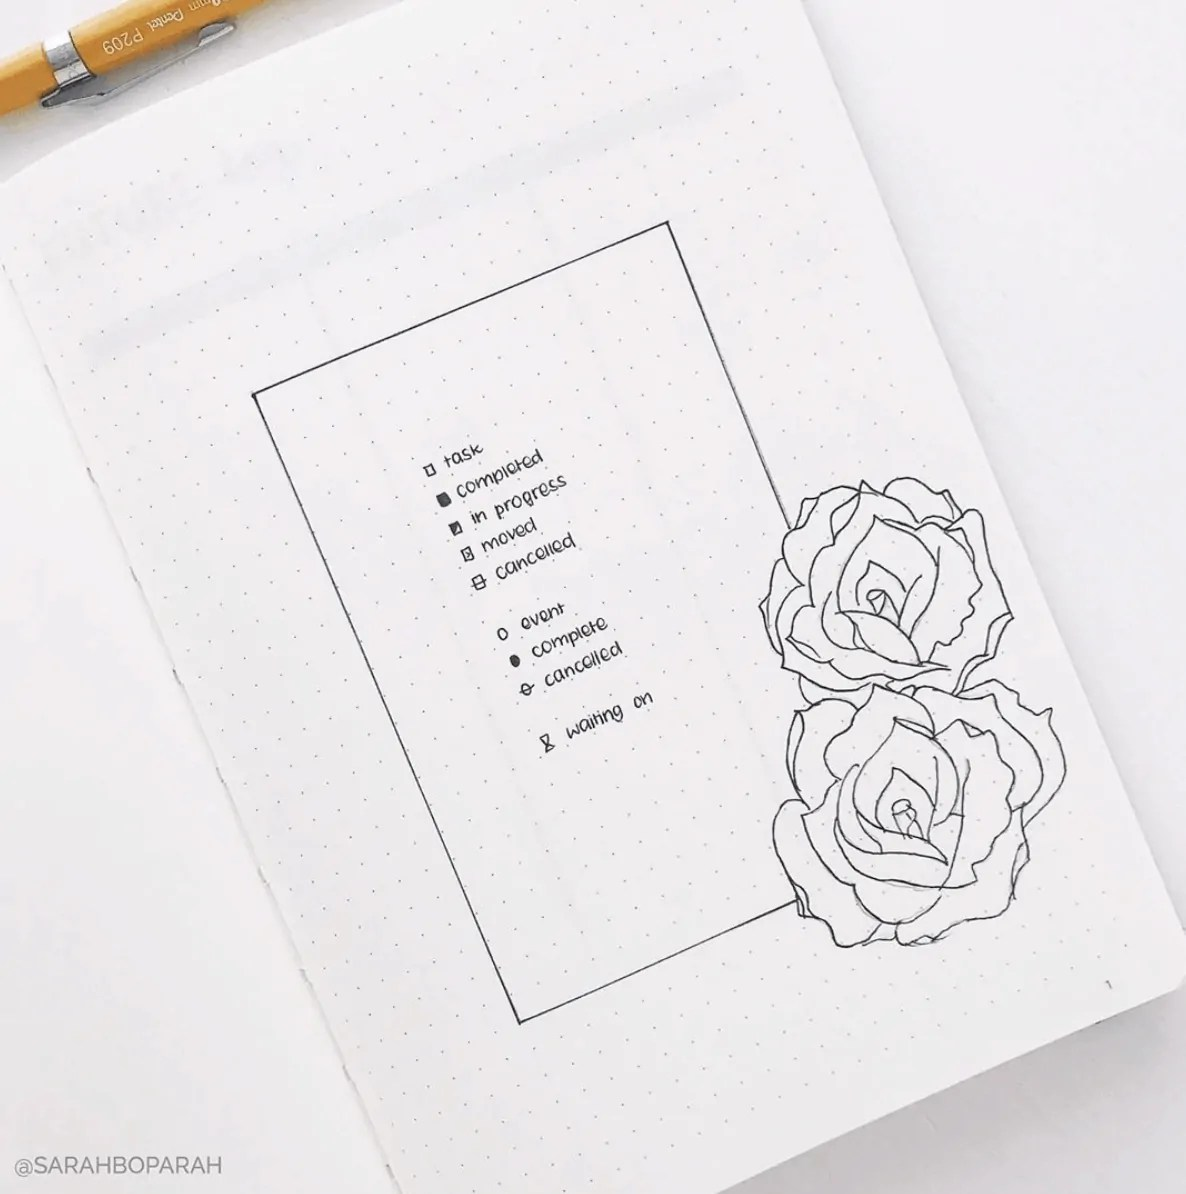 Bullet Journal Key: How to set it up + Ideas 20